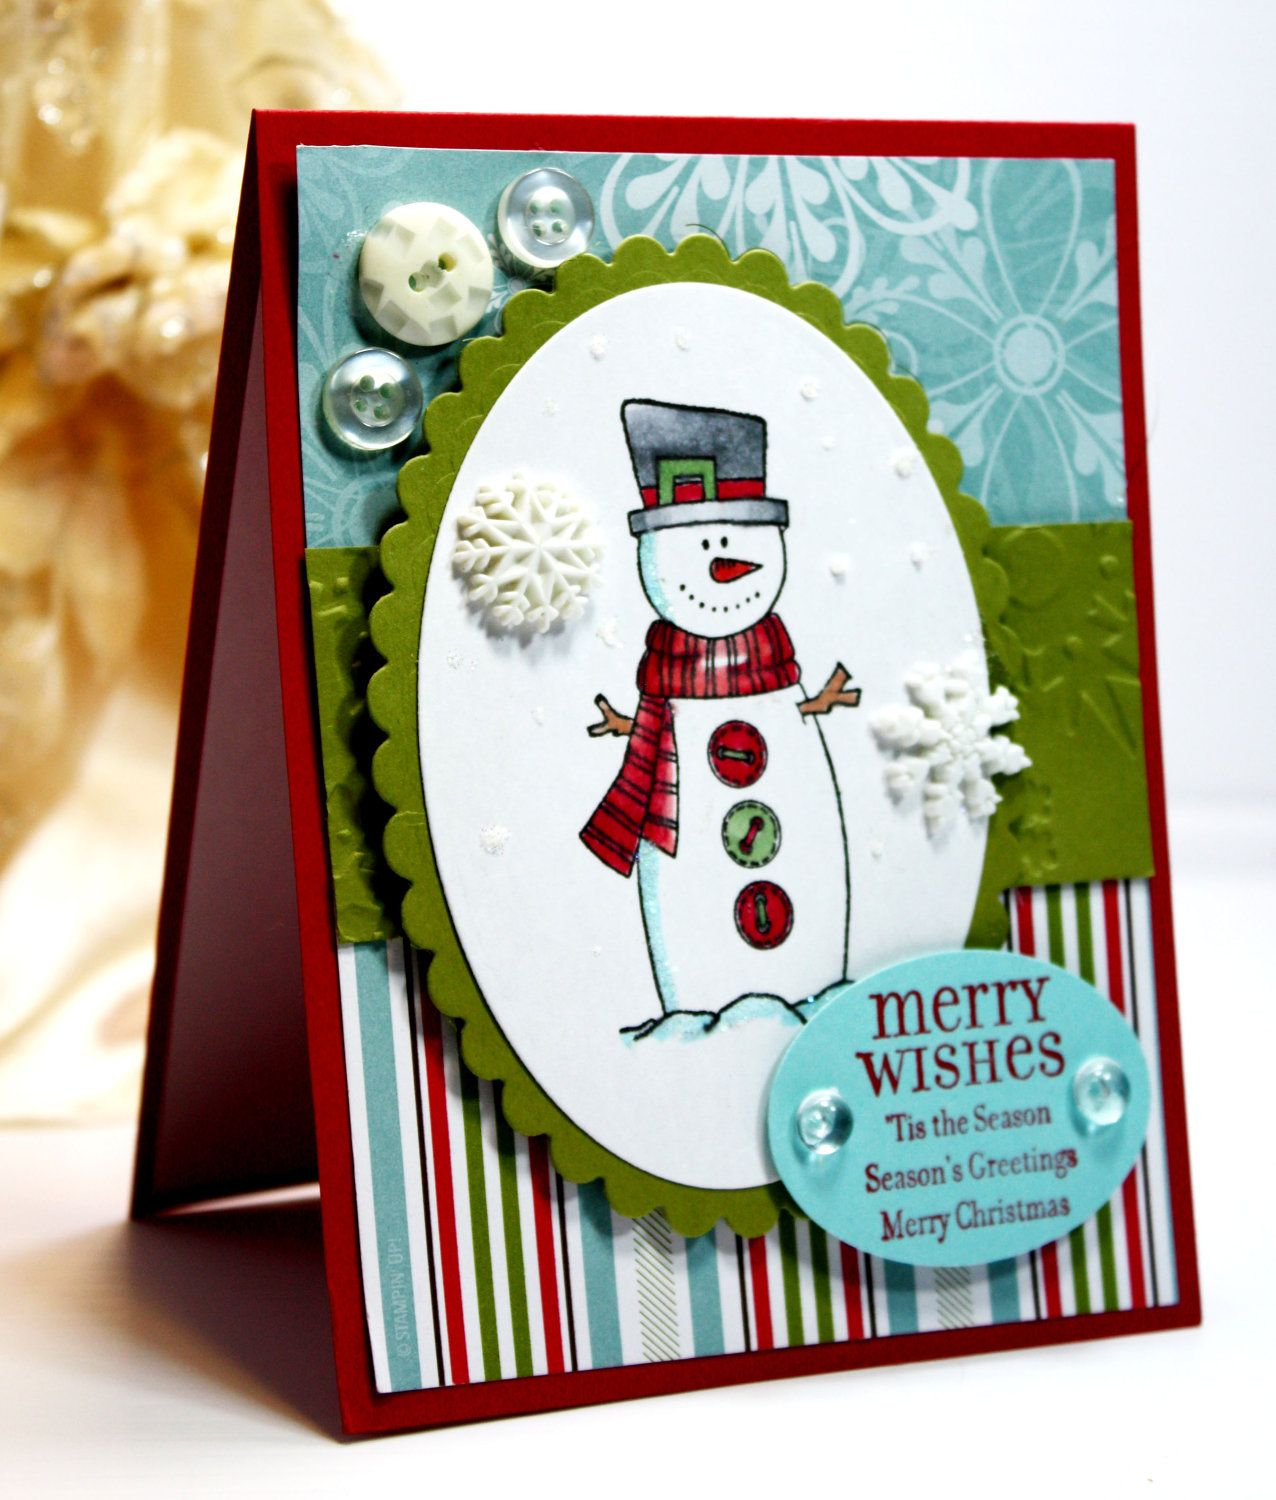 Christmas Card Handmade Card Greeting Card Merry Wishes Tis